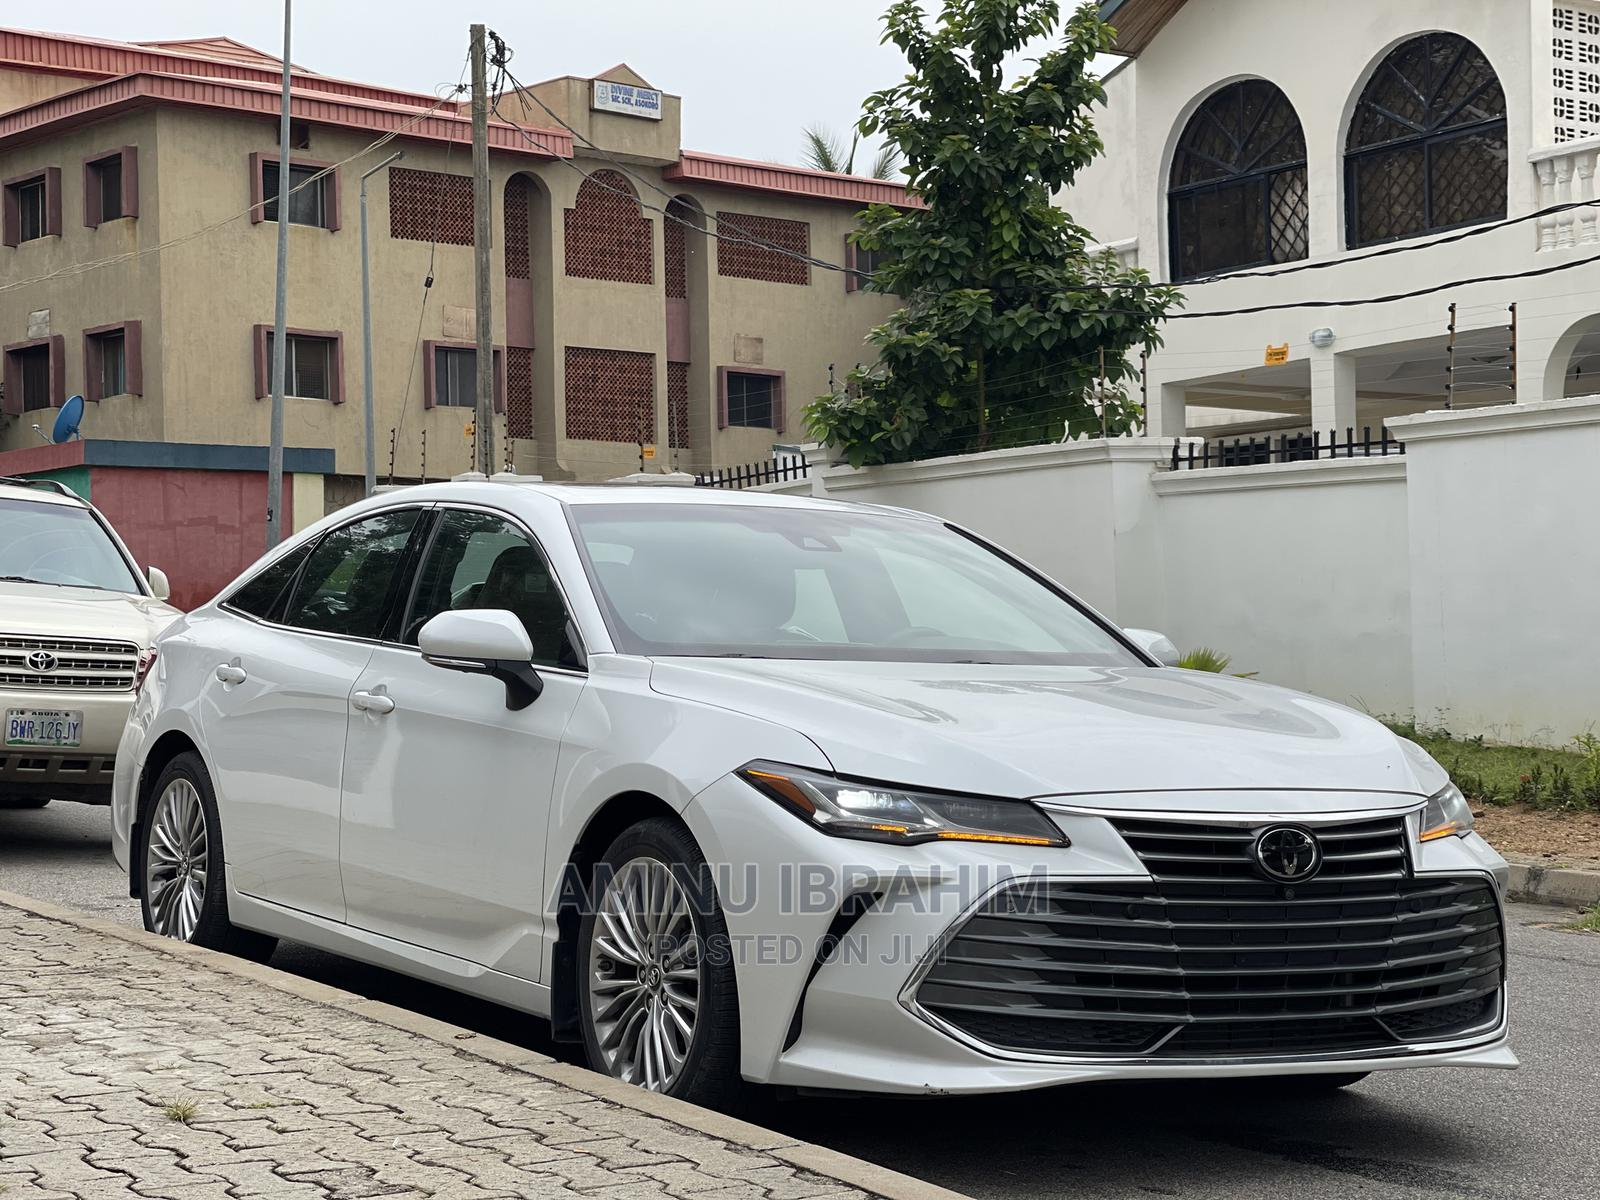 Archive: Toyota Avalon 2020 Limited White